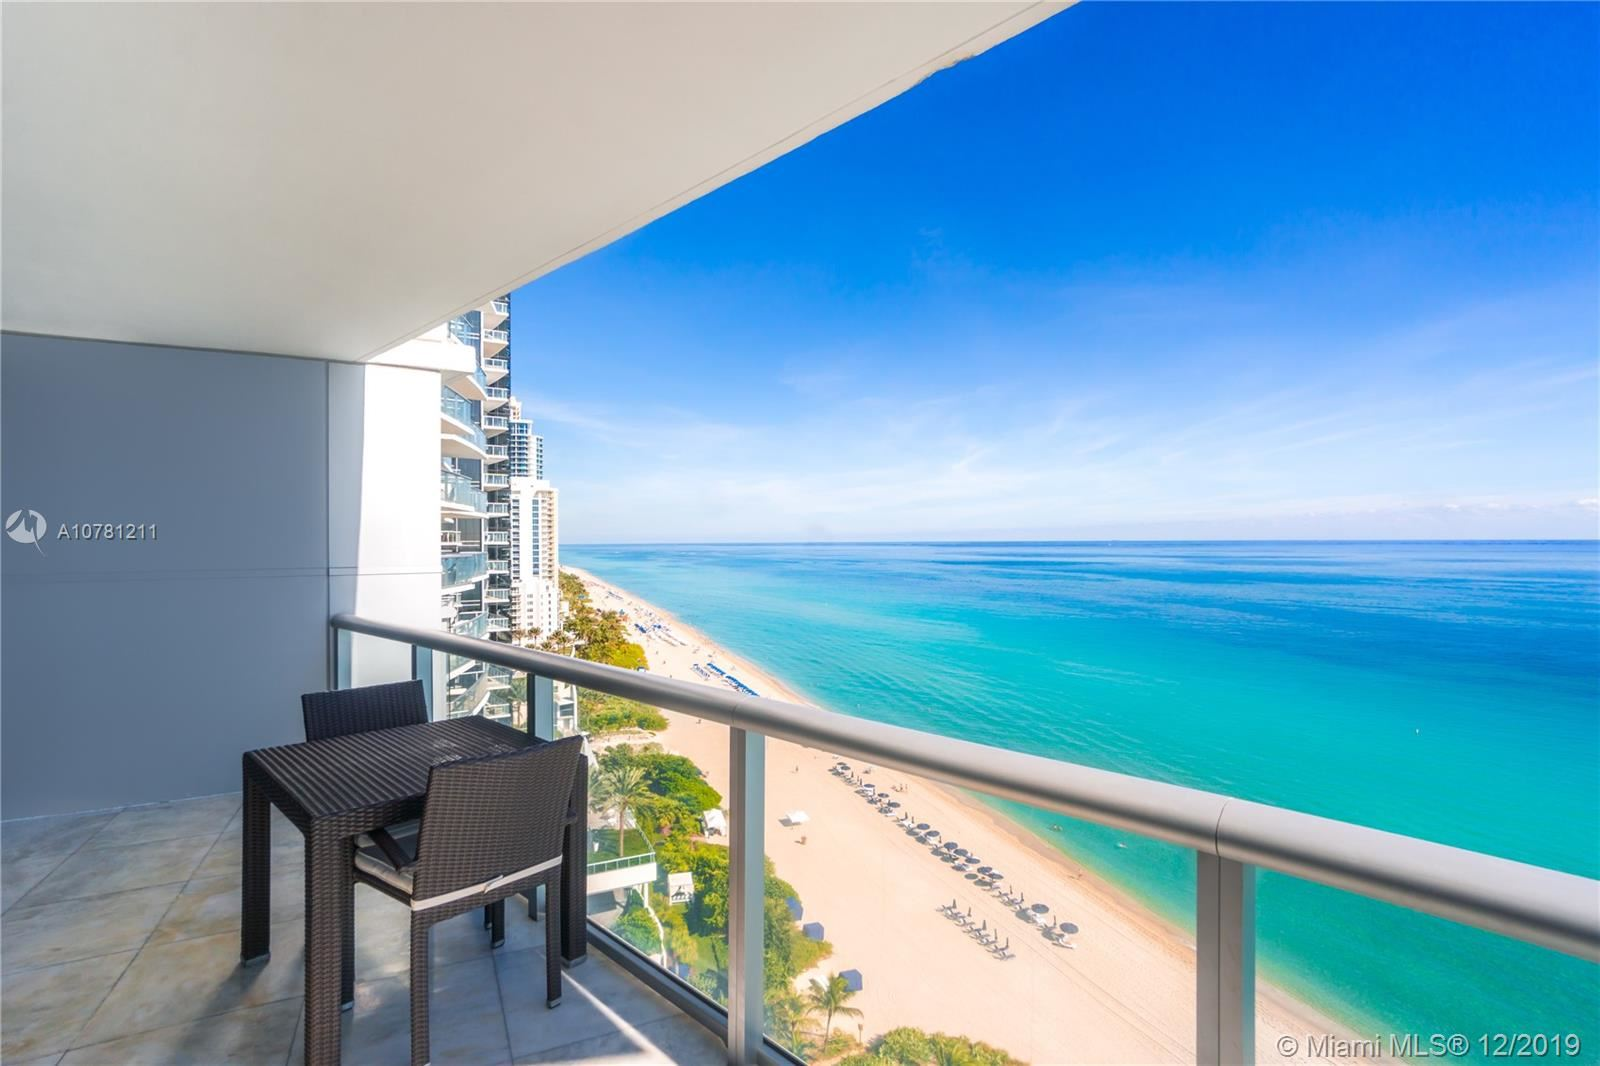 17001 Collins Ave #1803, Sunny Isles, FL 33160 - #: A10781211